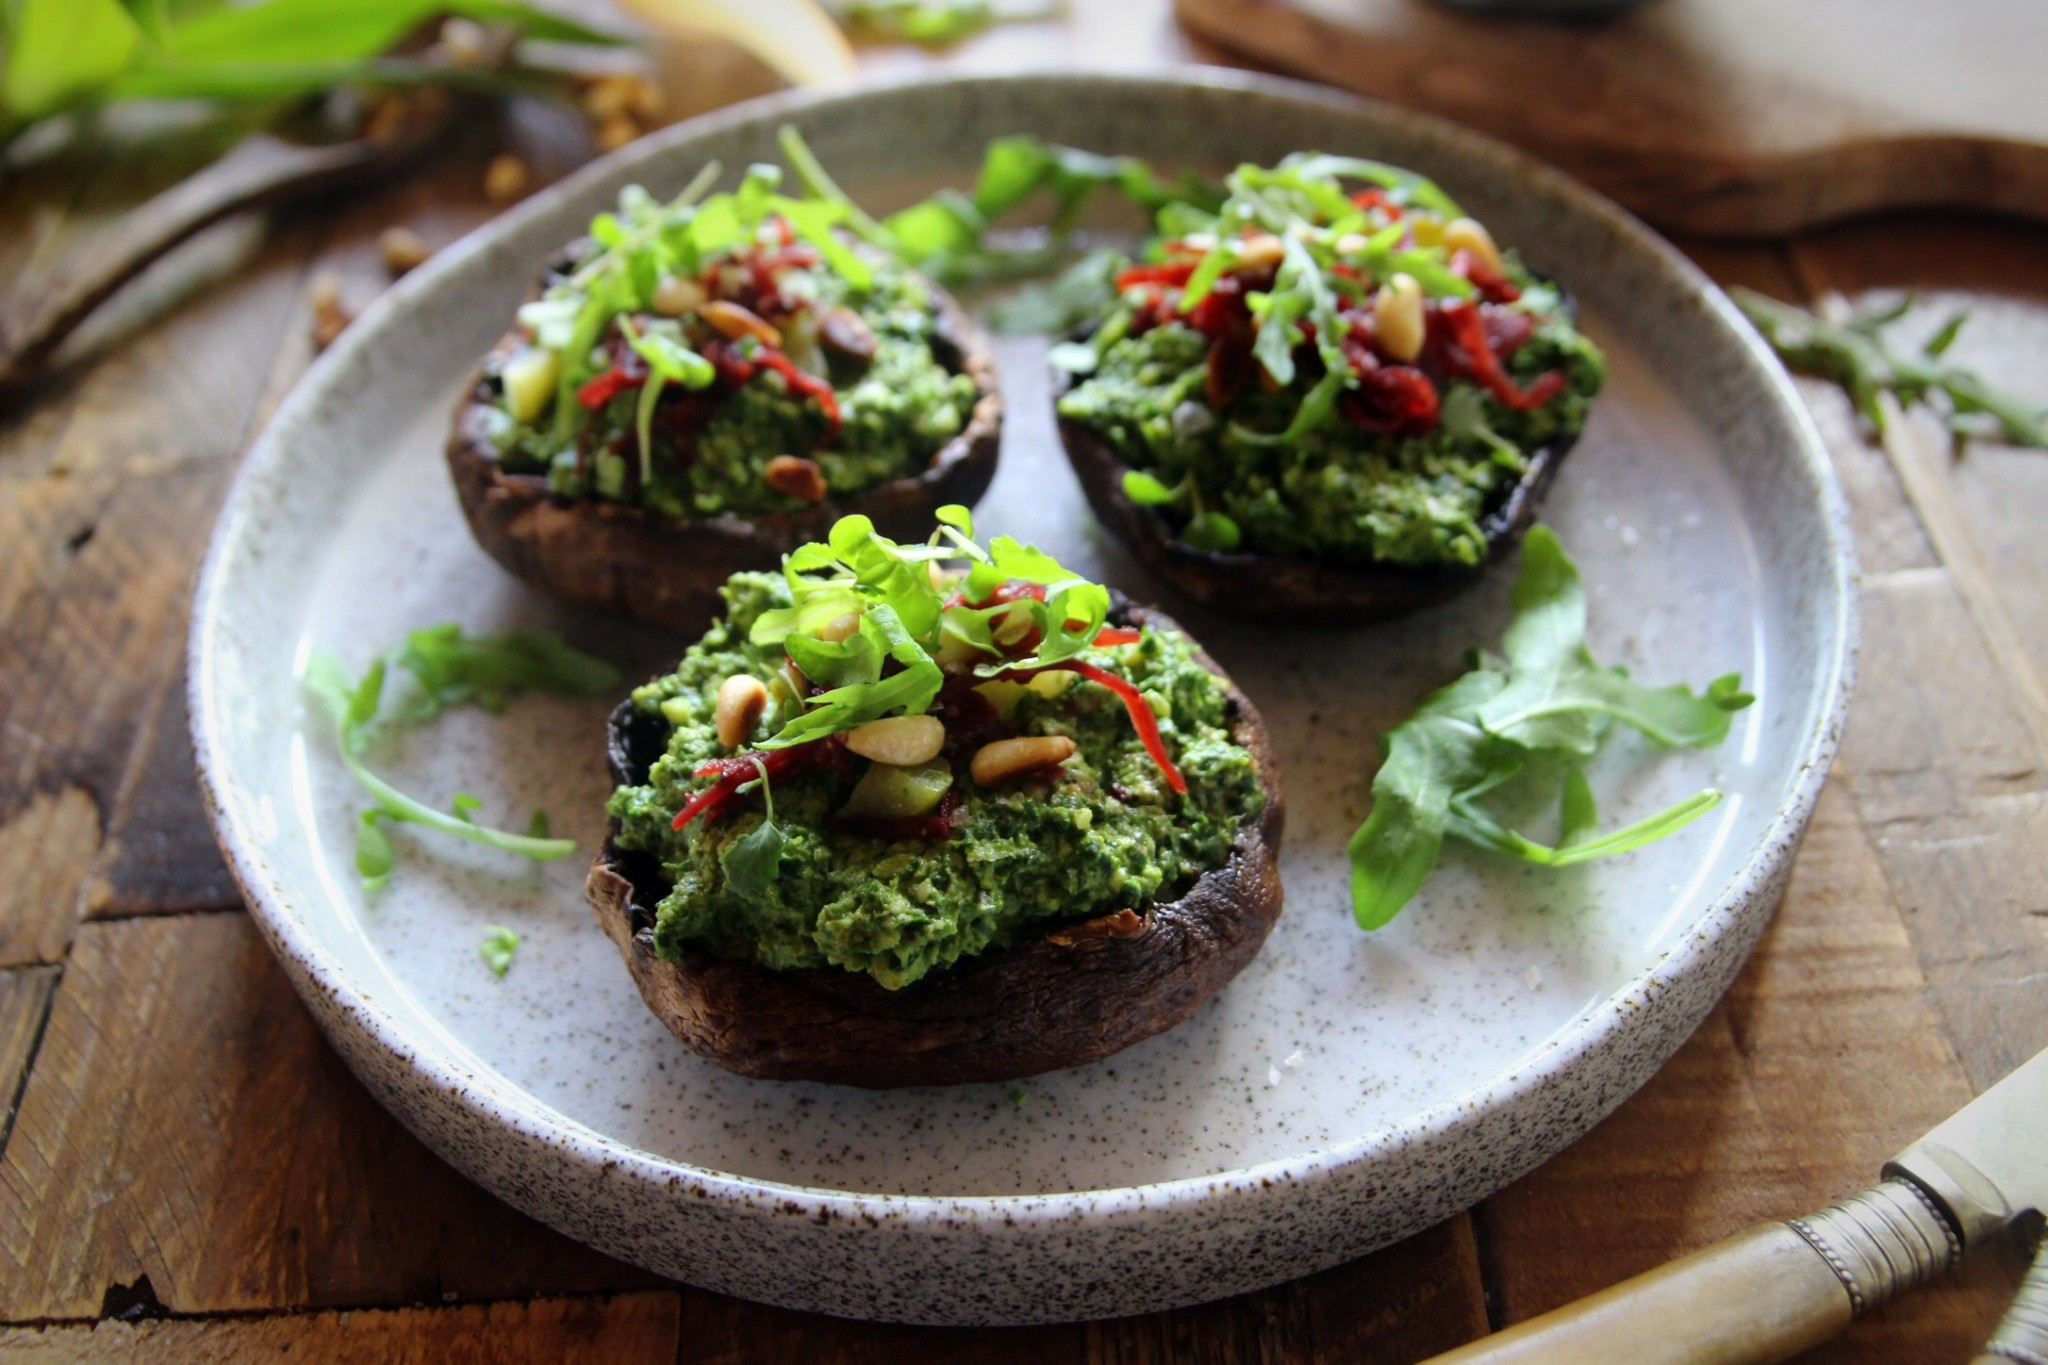 Grilled Mushrooms with Spinach & Kale Pesto